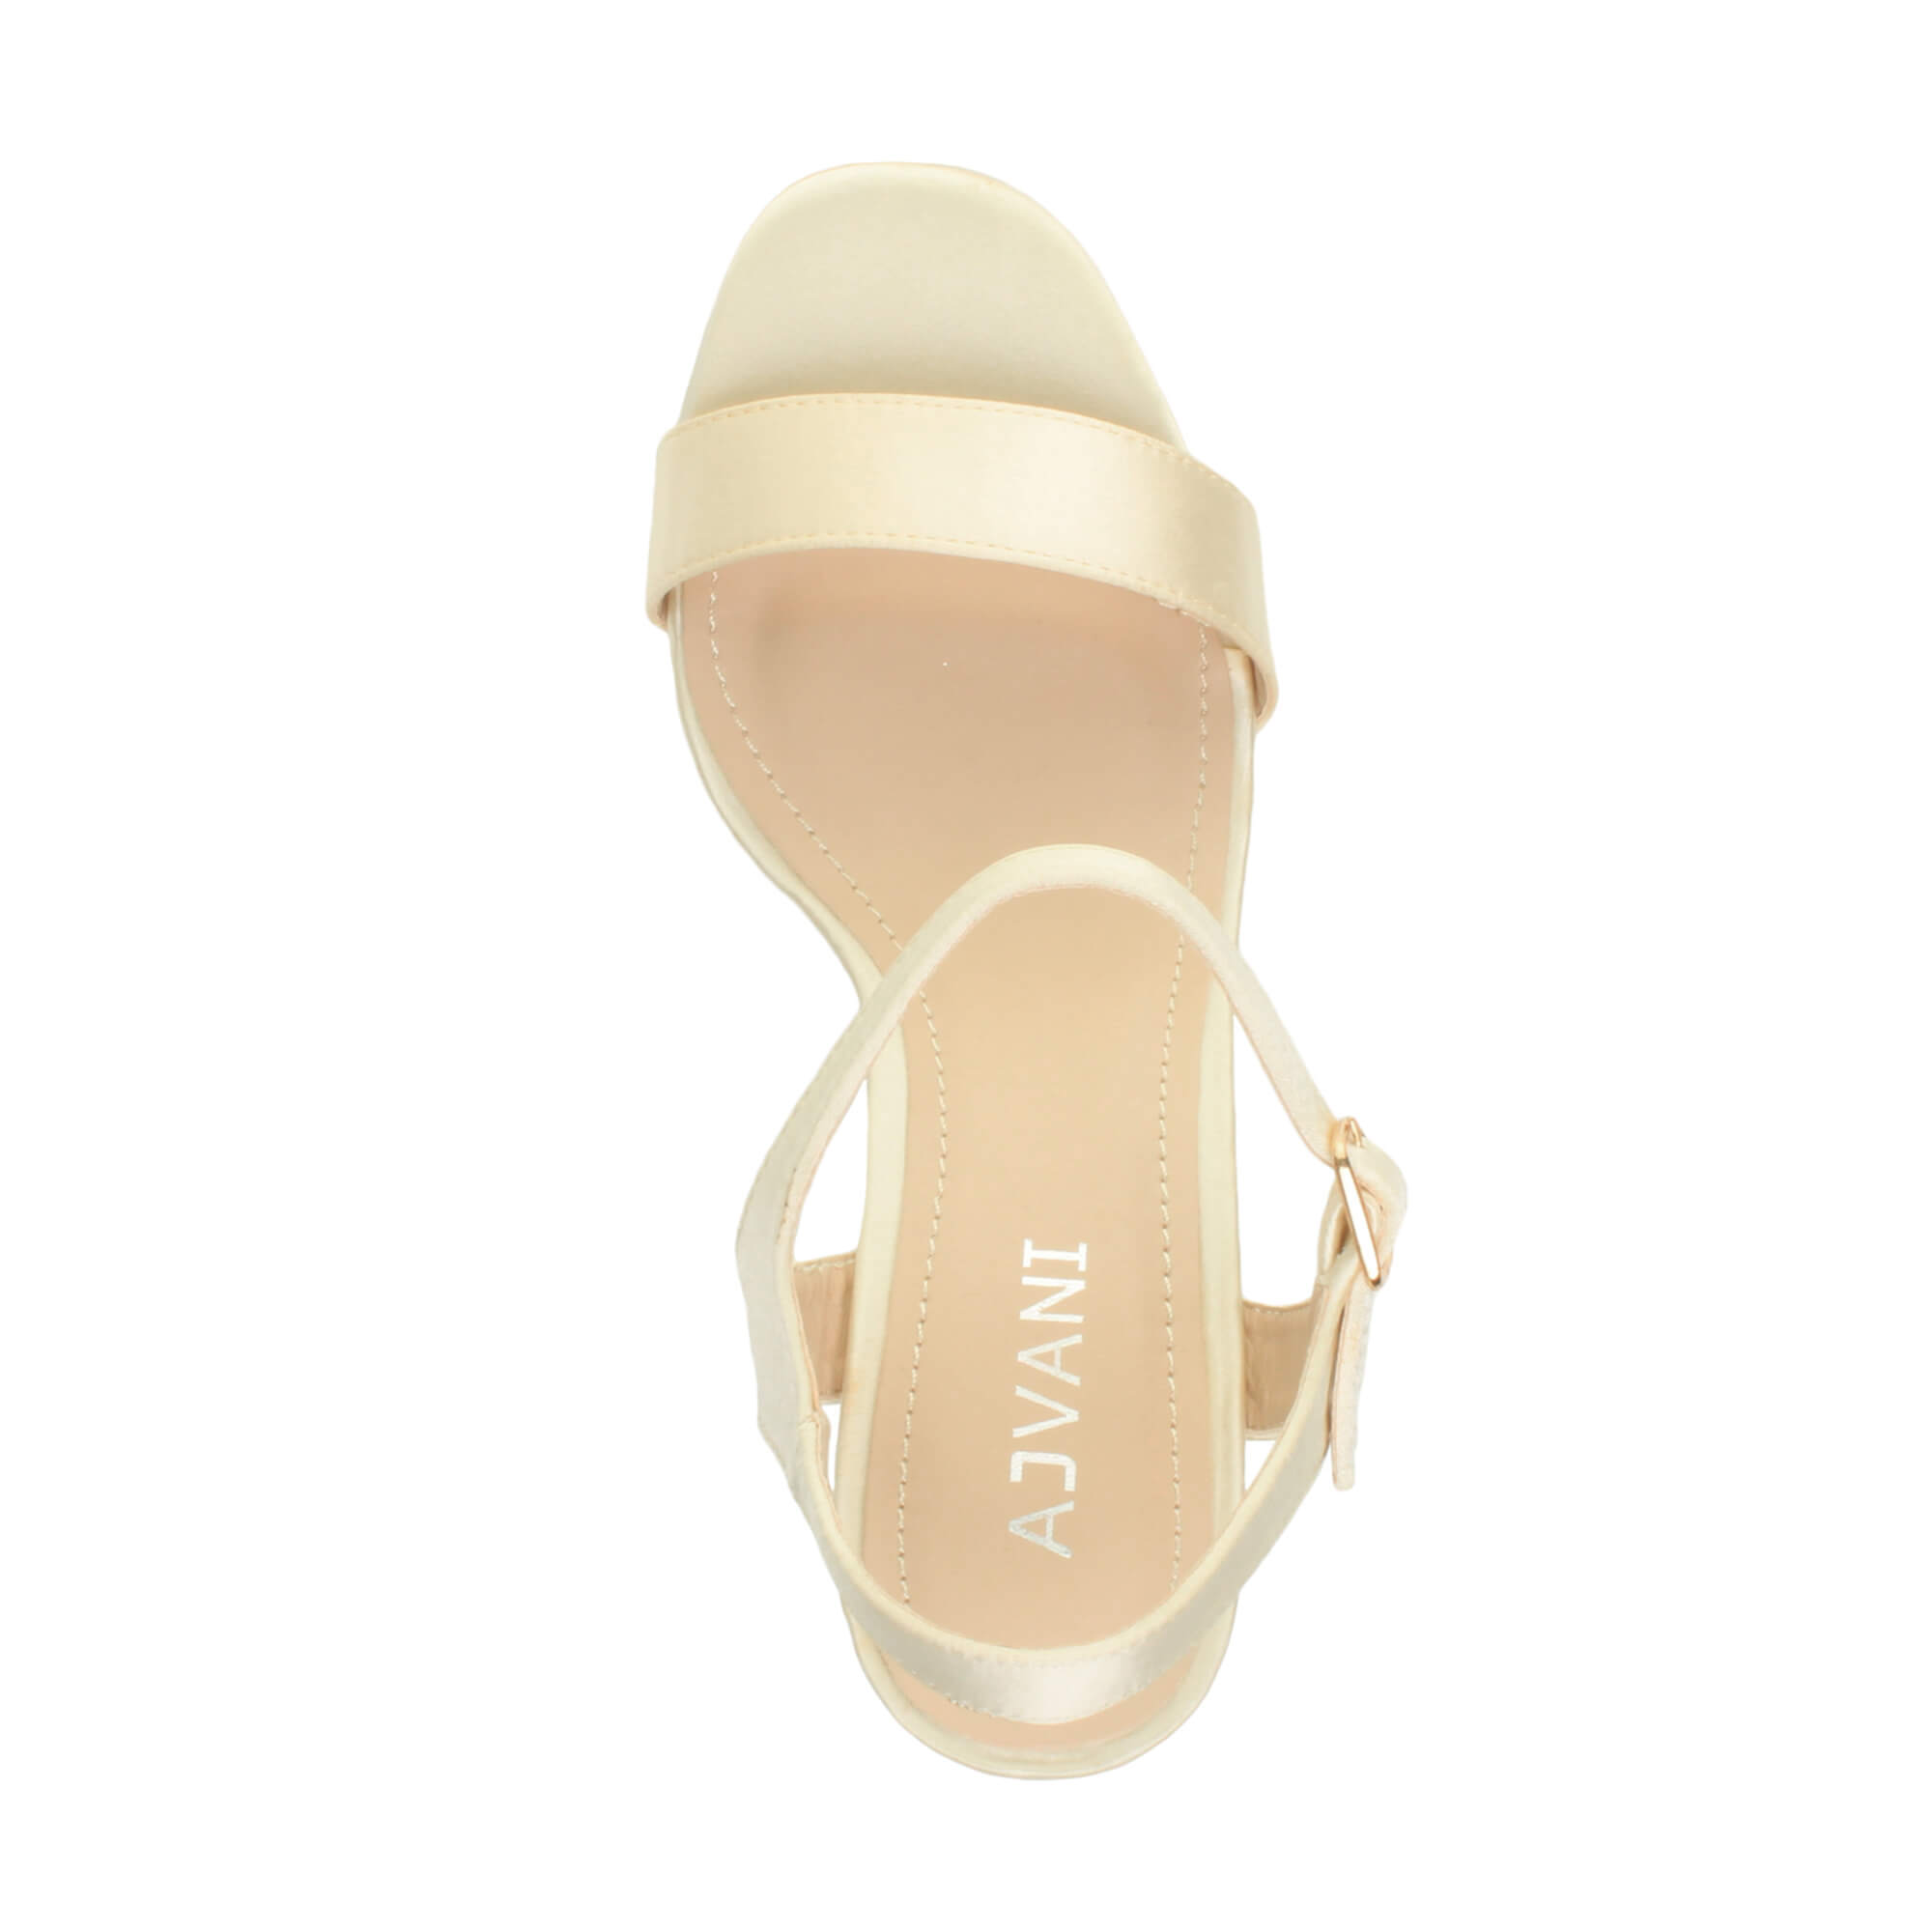 WOMENS-LADIES-HIGH-HEEL-BUCKLE-STRAPPY-BASIC-BARELY-THERE-SANDALS-SHOES-SIZE thumbnail 56